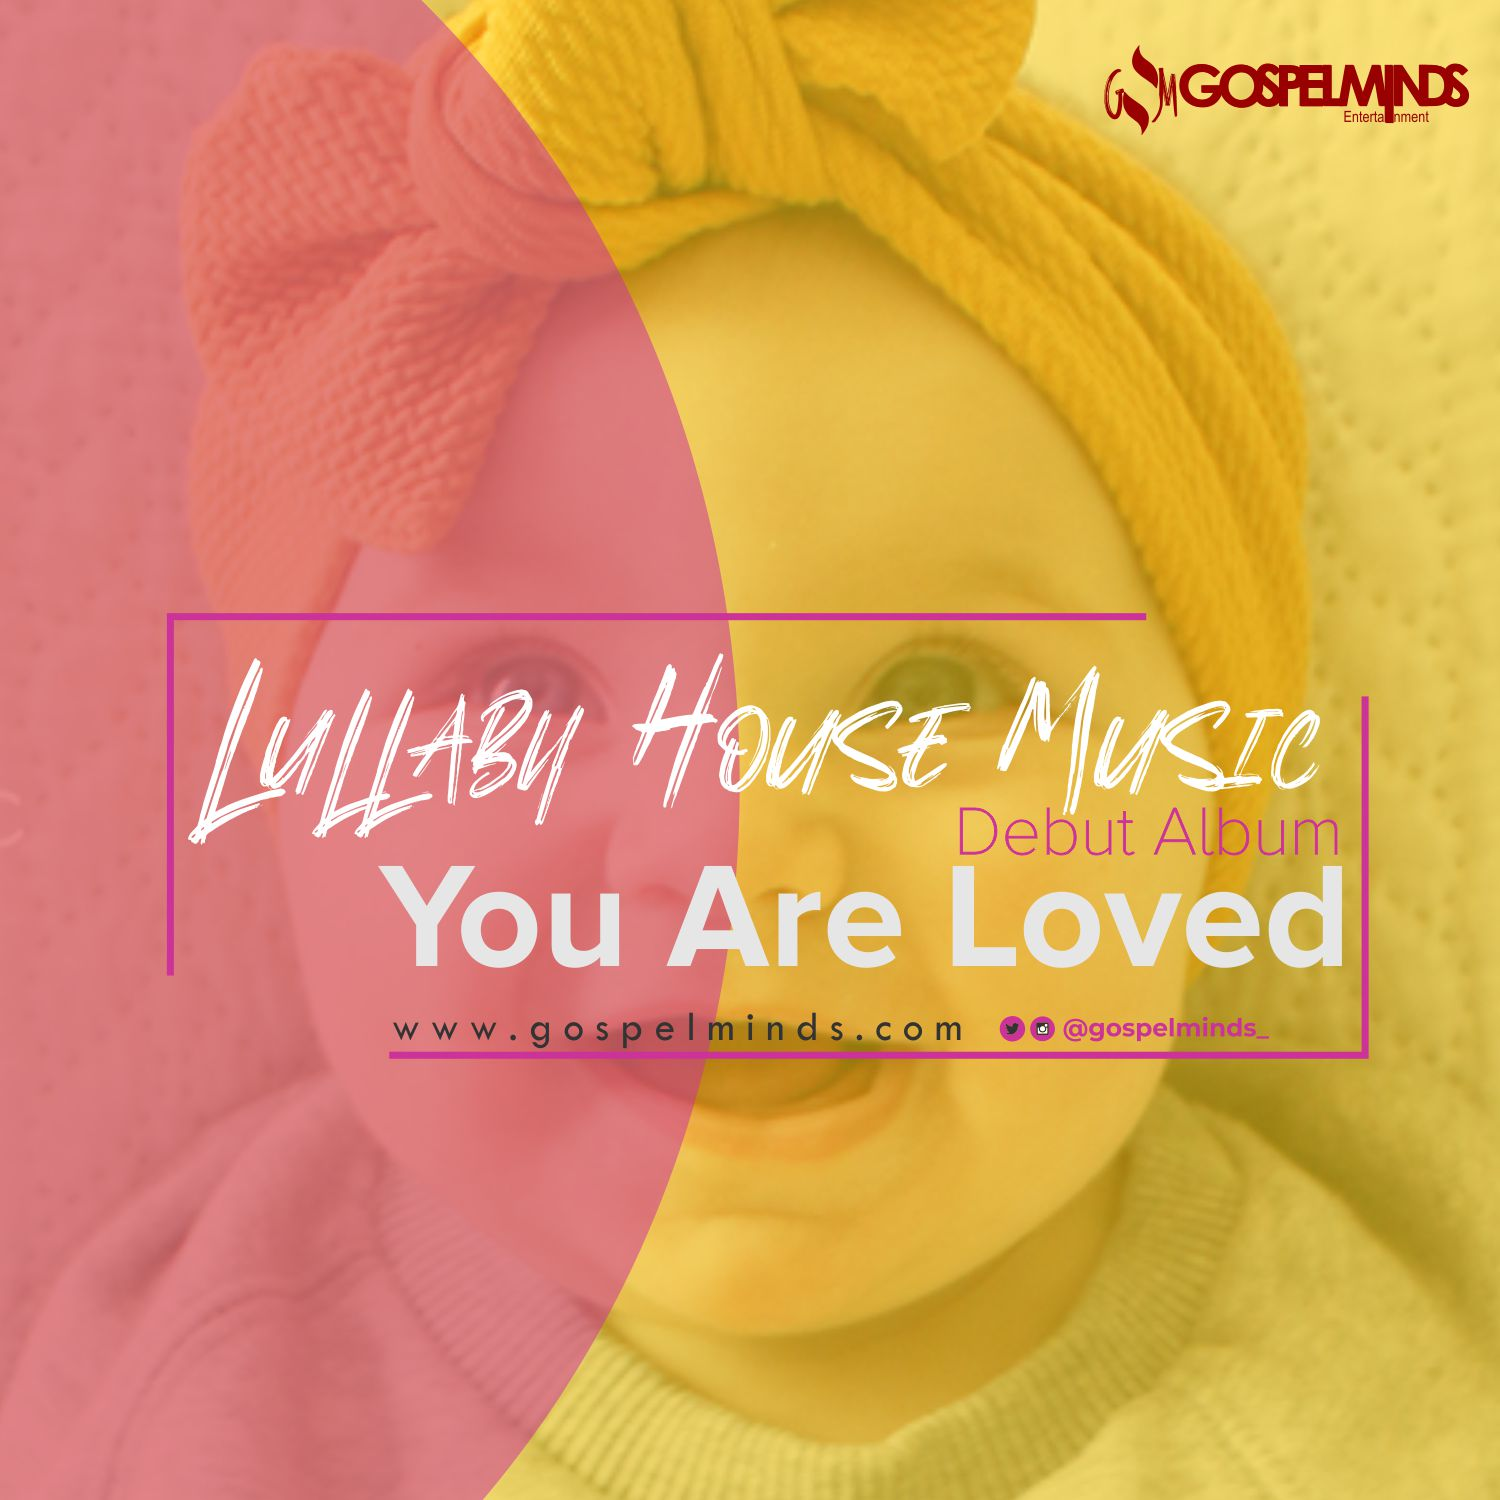 Lullaby House Music - You Are Loved